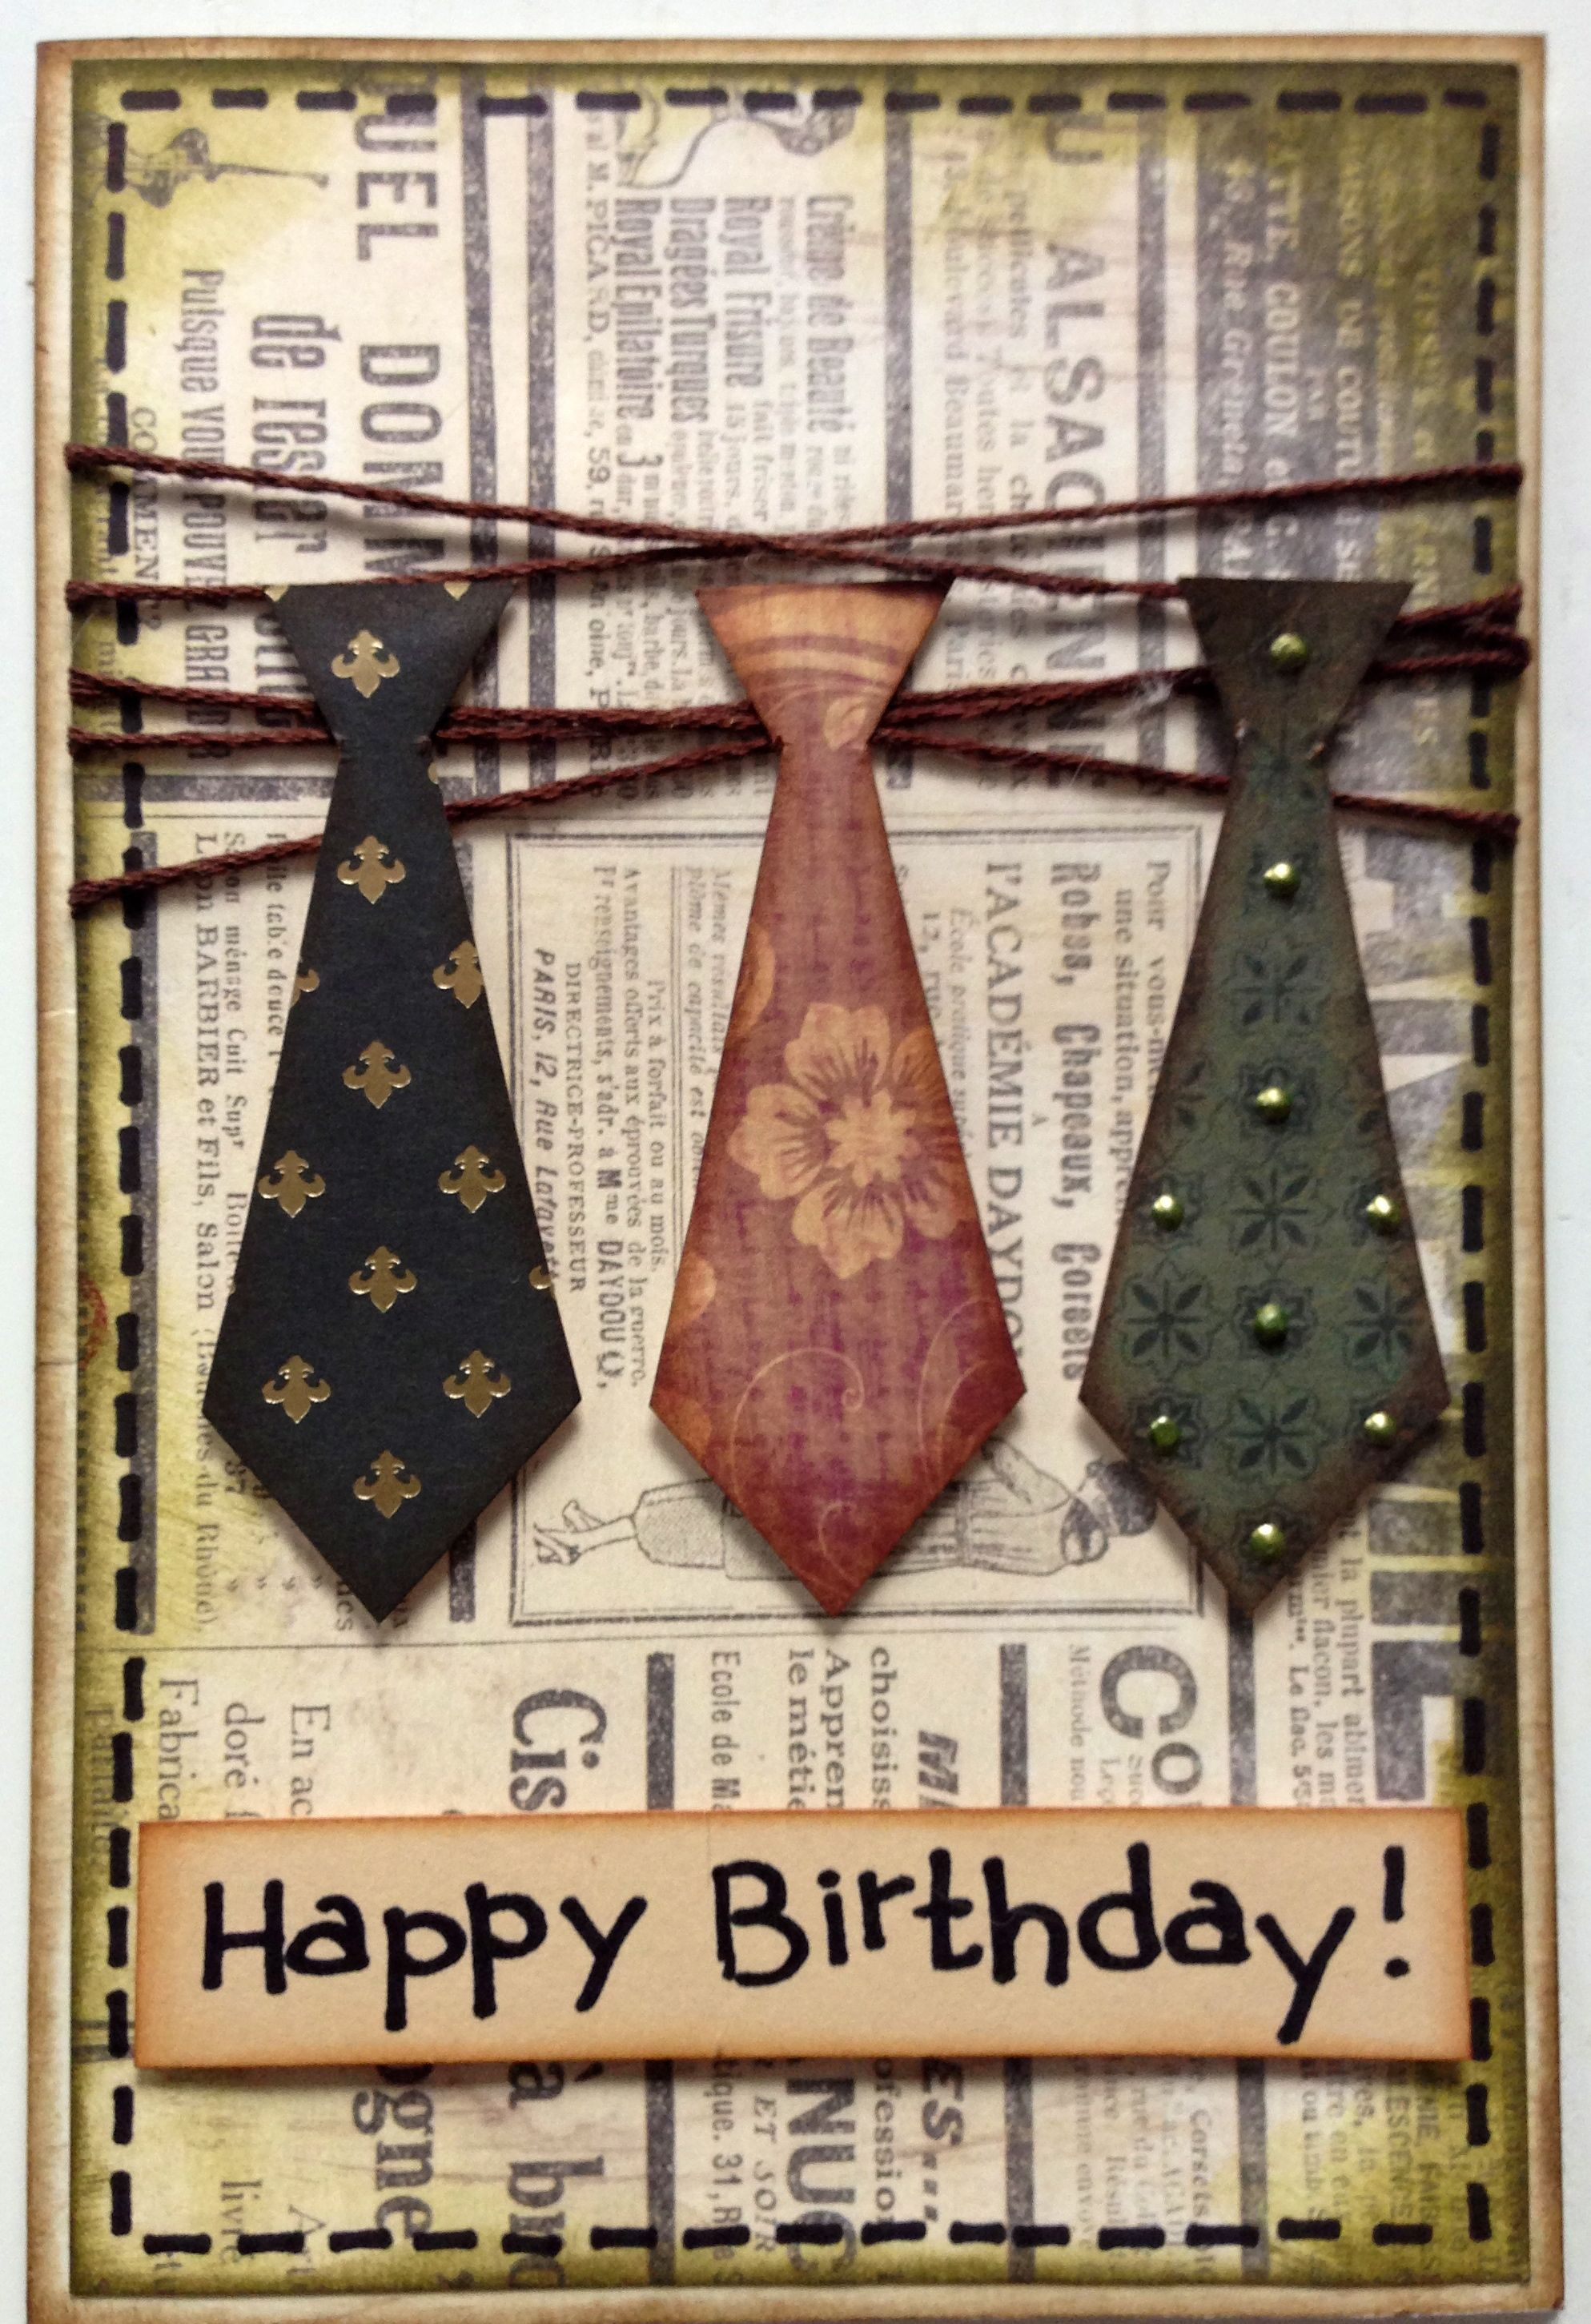 How to scrapbook birthday cards - Card Making Is Also A Big Part Of Scrapbooking The Best Thing About This Is That You Ll Never Have To Buy Some Boring Or Impersonal Birthd Birthday